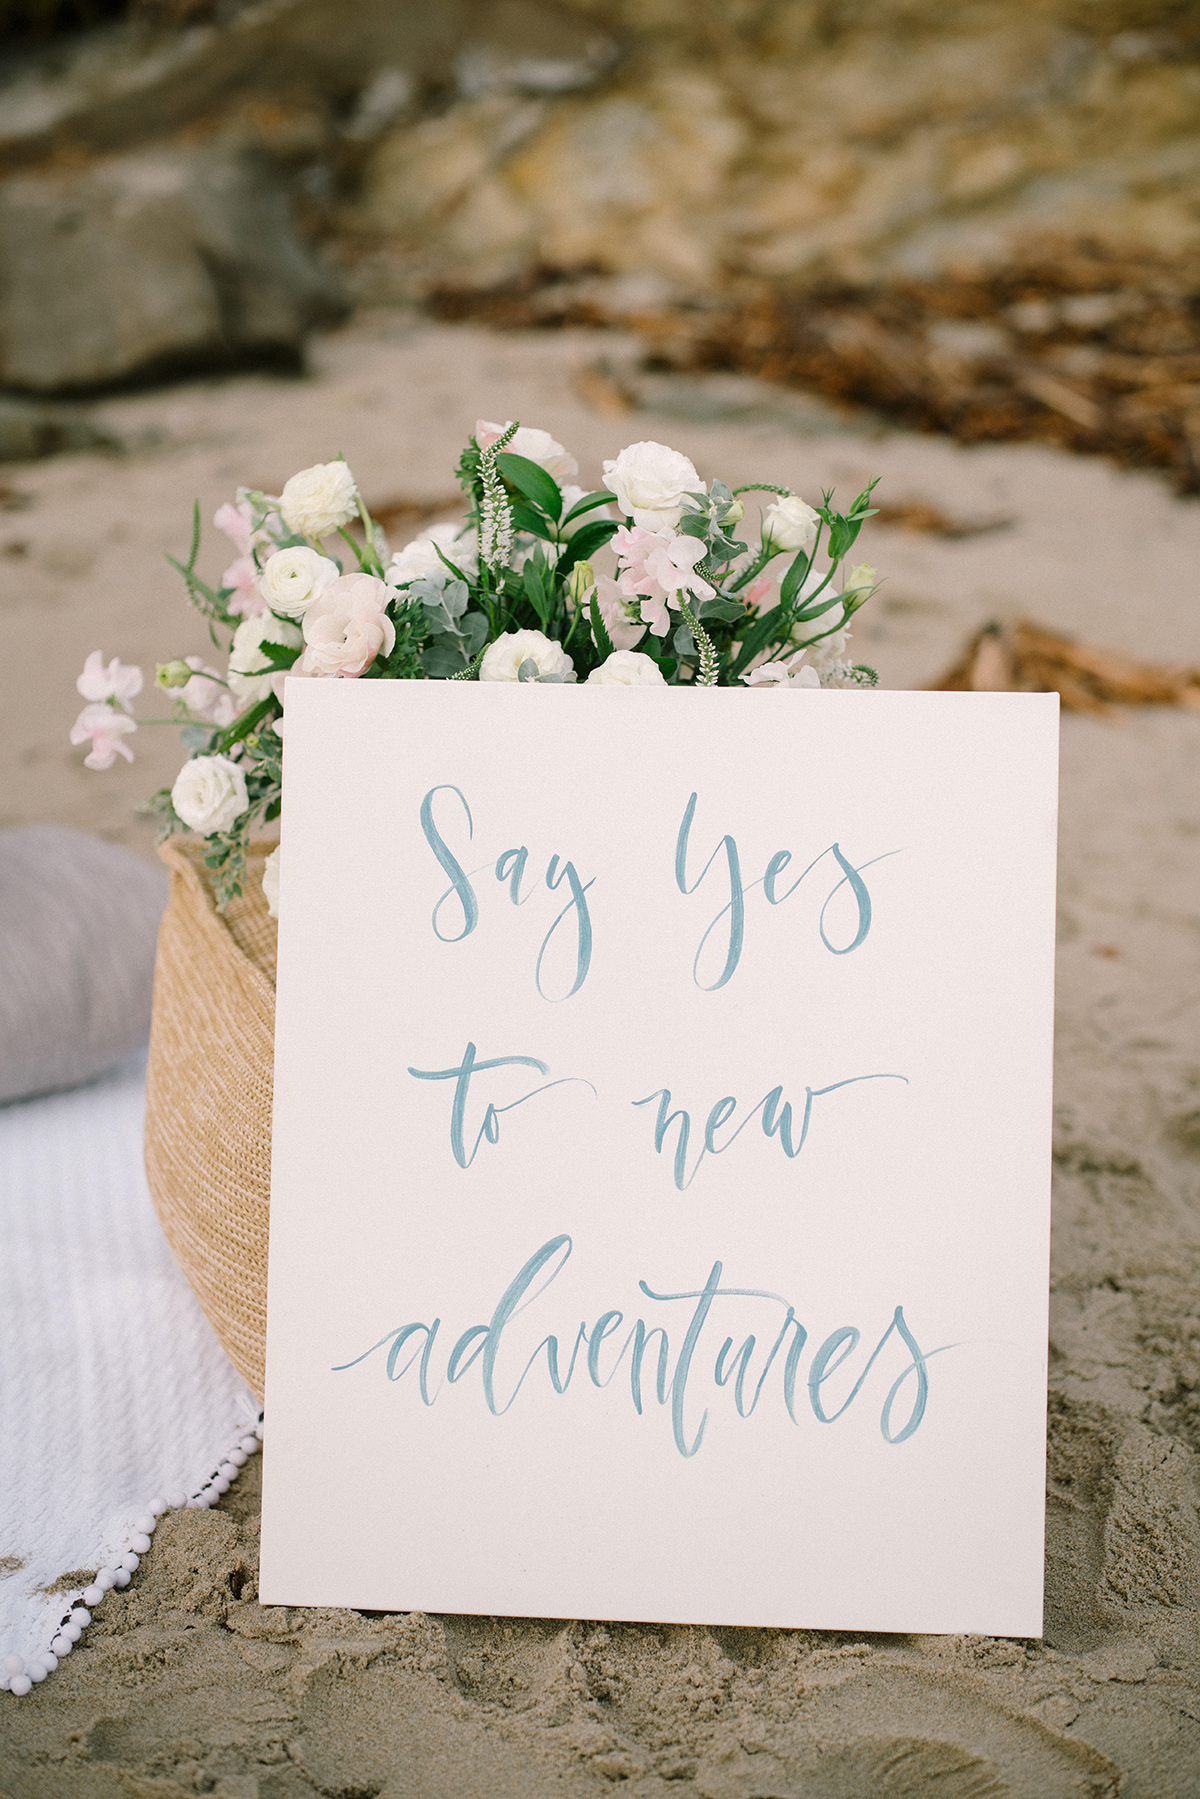 photo booth travel prop card that reads Say yes to new adventures